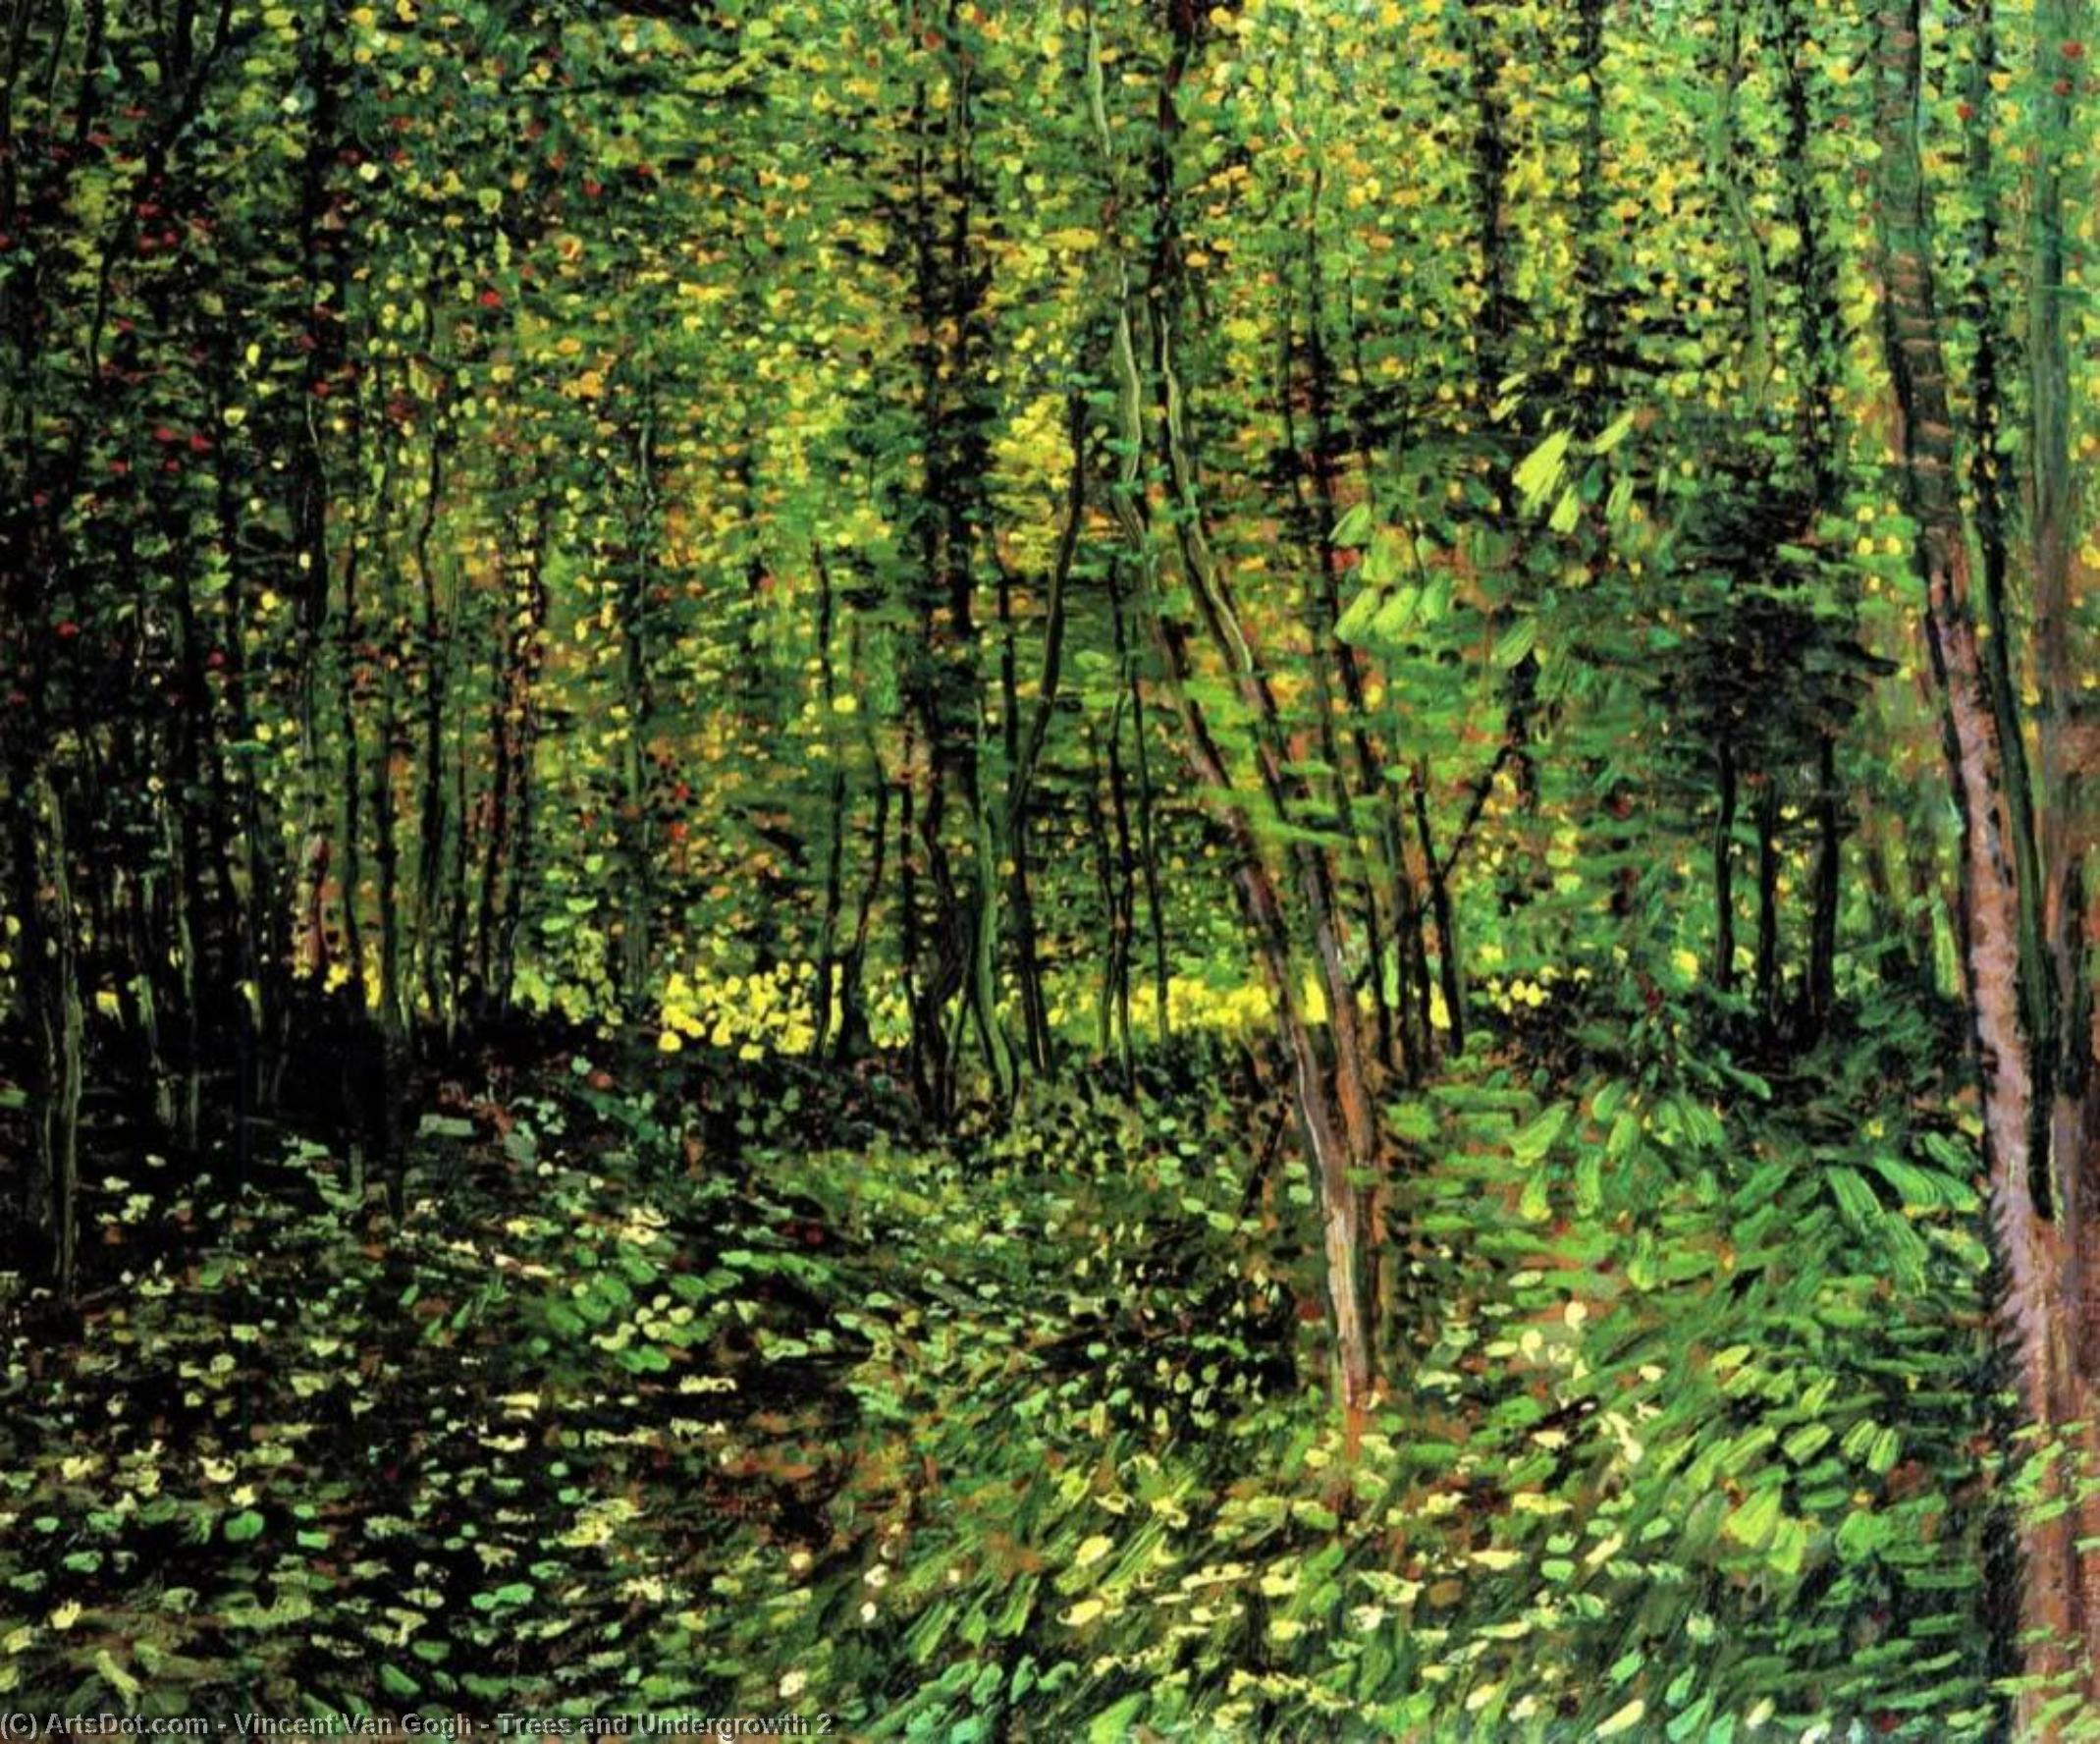 Trees and Undergrowth 2 - Vincent Van Gogh